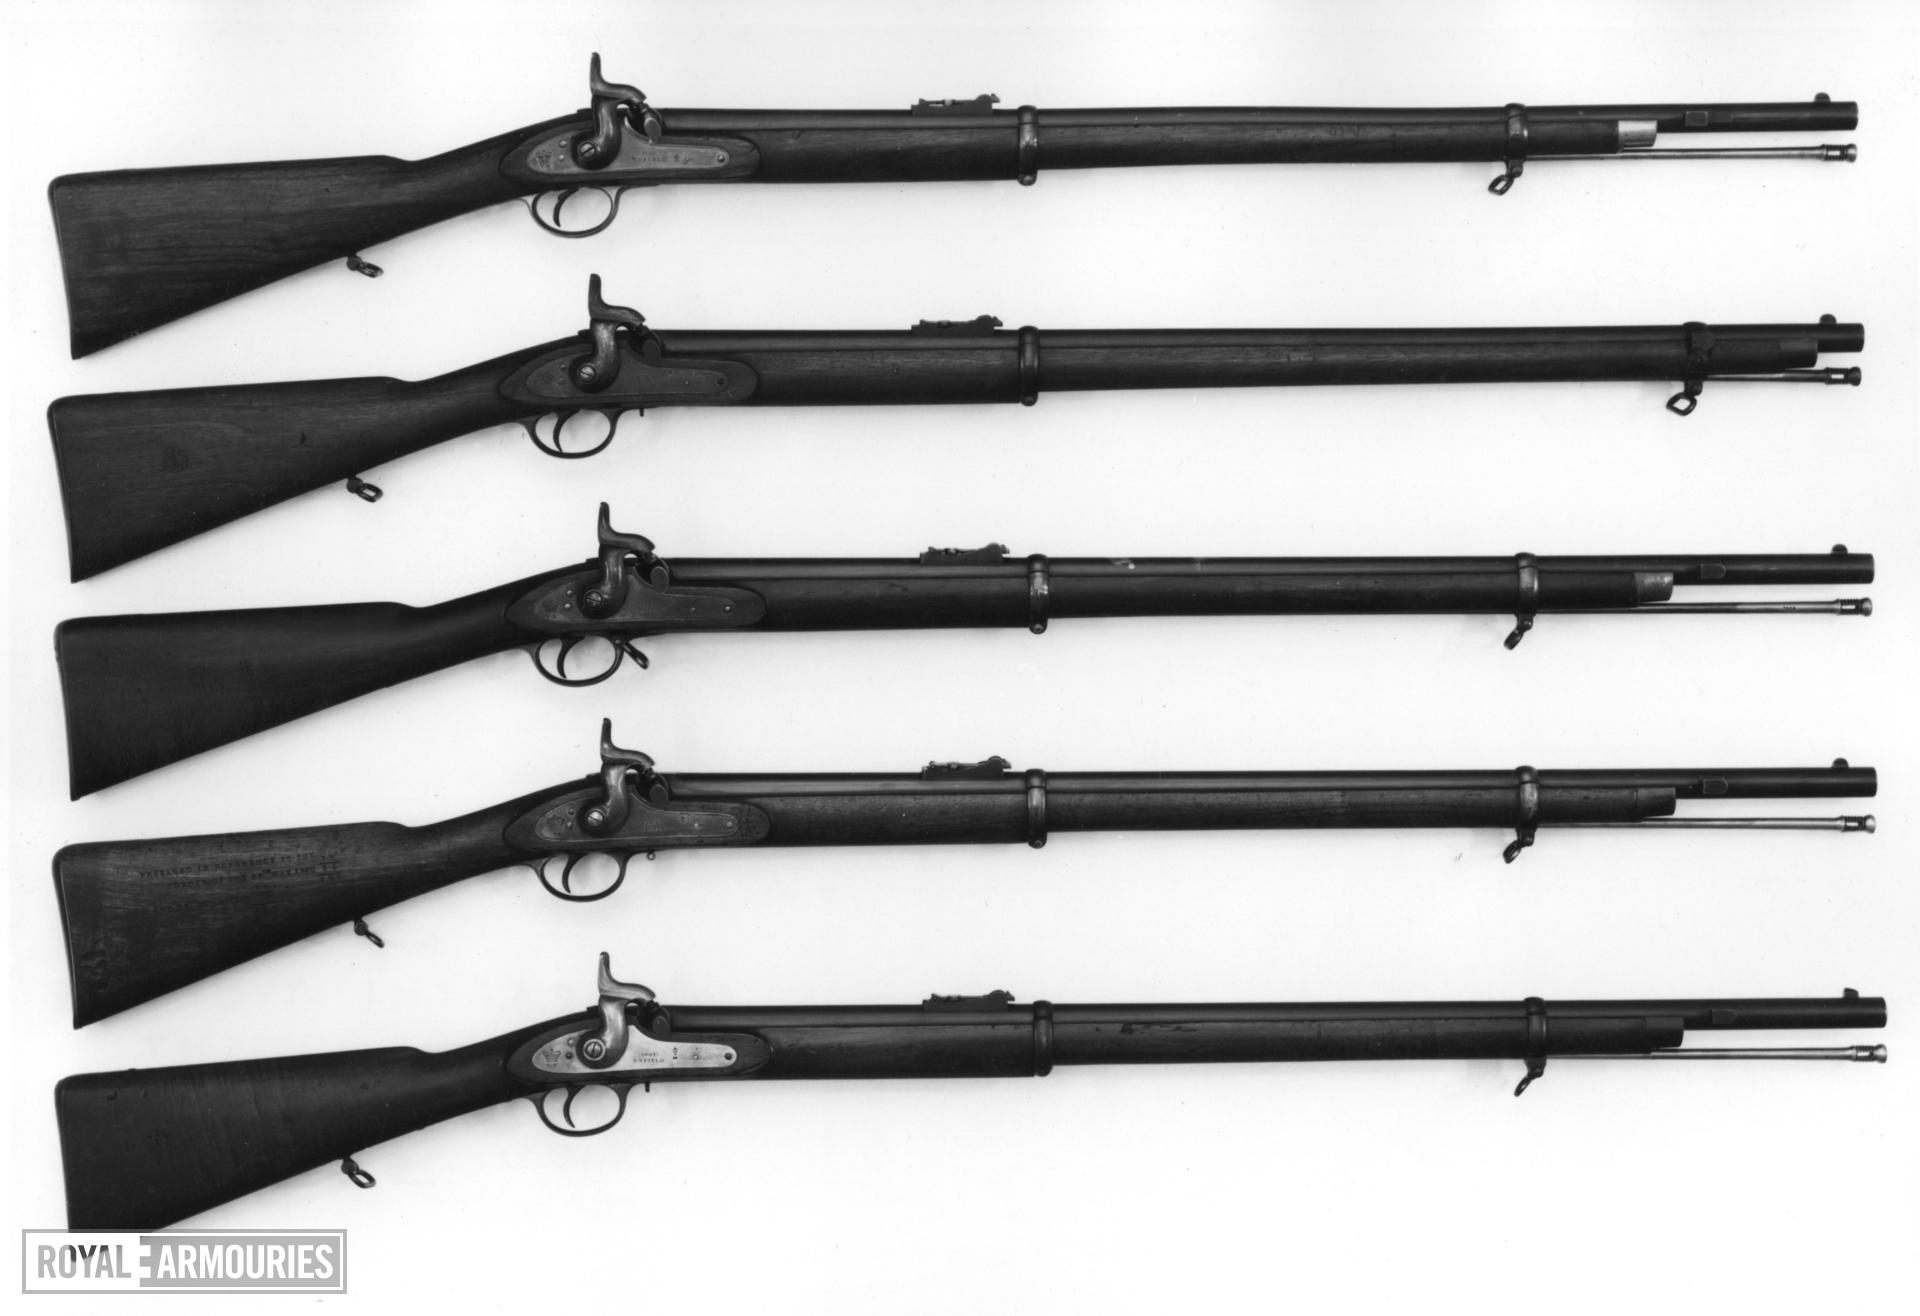 Percussion muzzle-loading military rifle-musket - Pattern 1858 Naval Rifle, sealed pattern Enfield pattern, effectively the sealed pattern but without a seal - stamped on butt No 1, Prepared October 1857. Lock dated 1857; bayonet bar on barrel